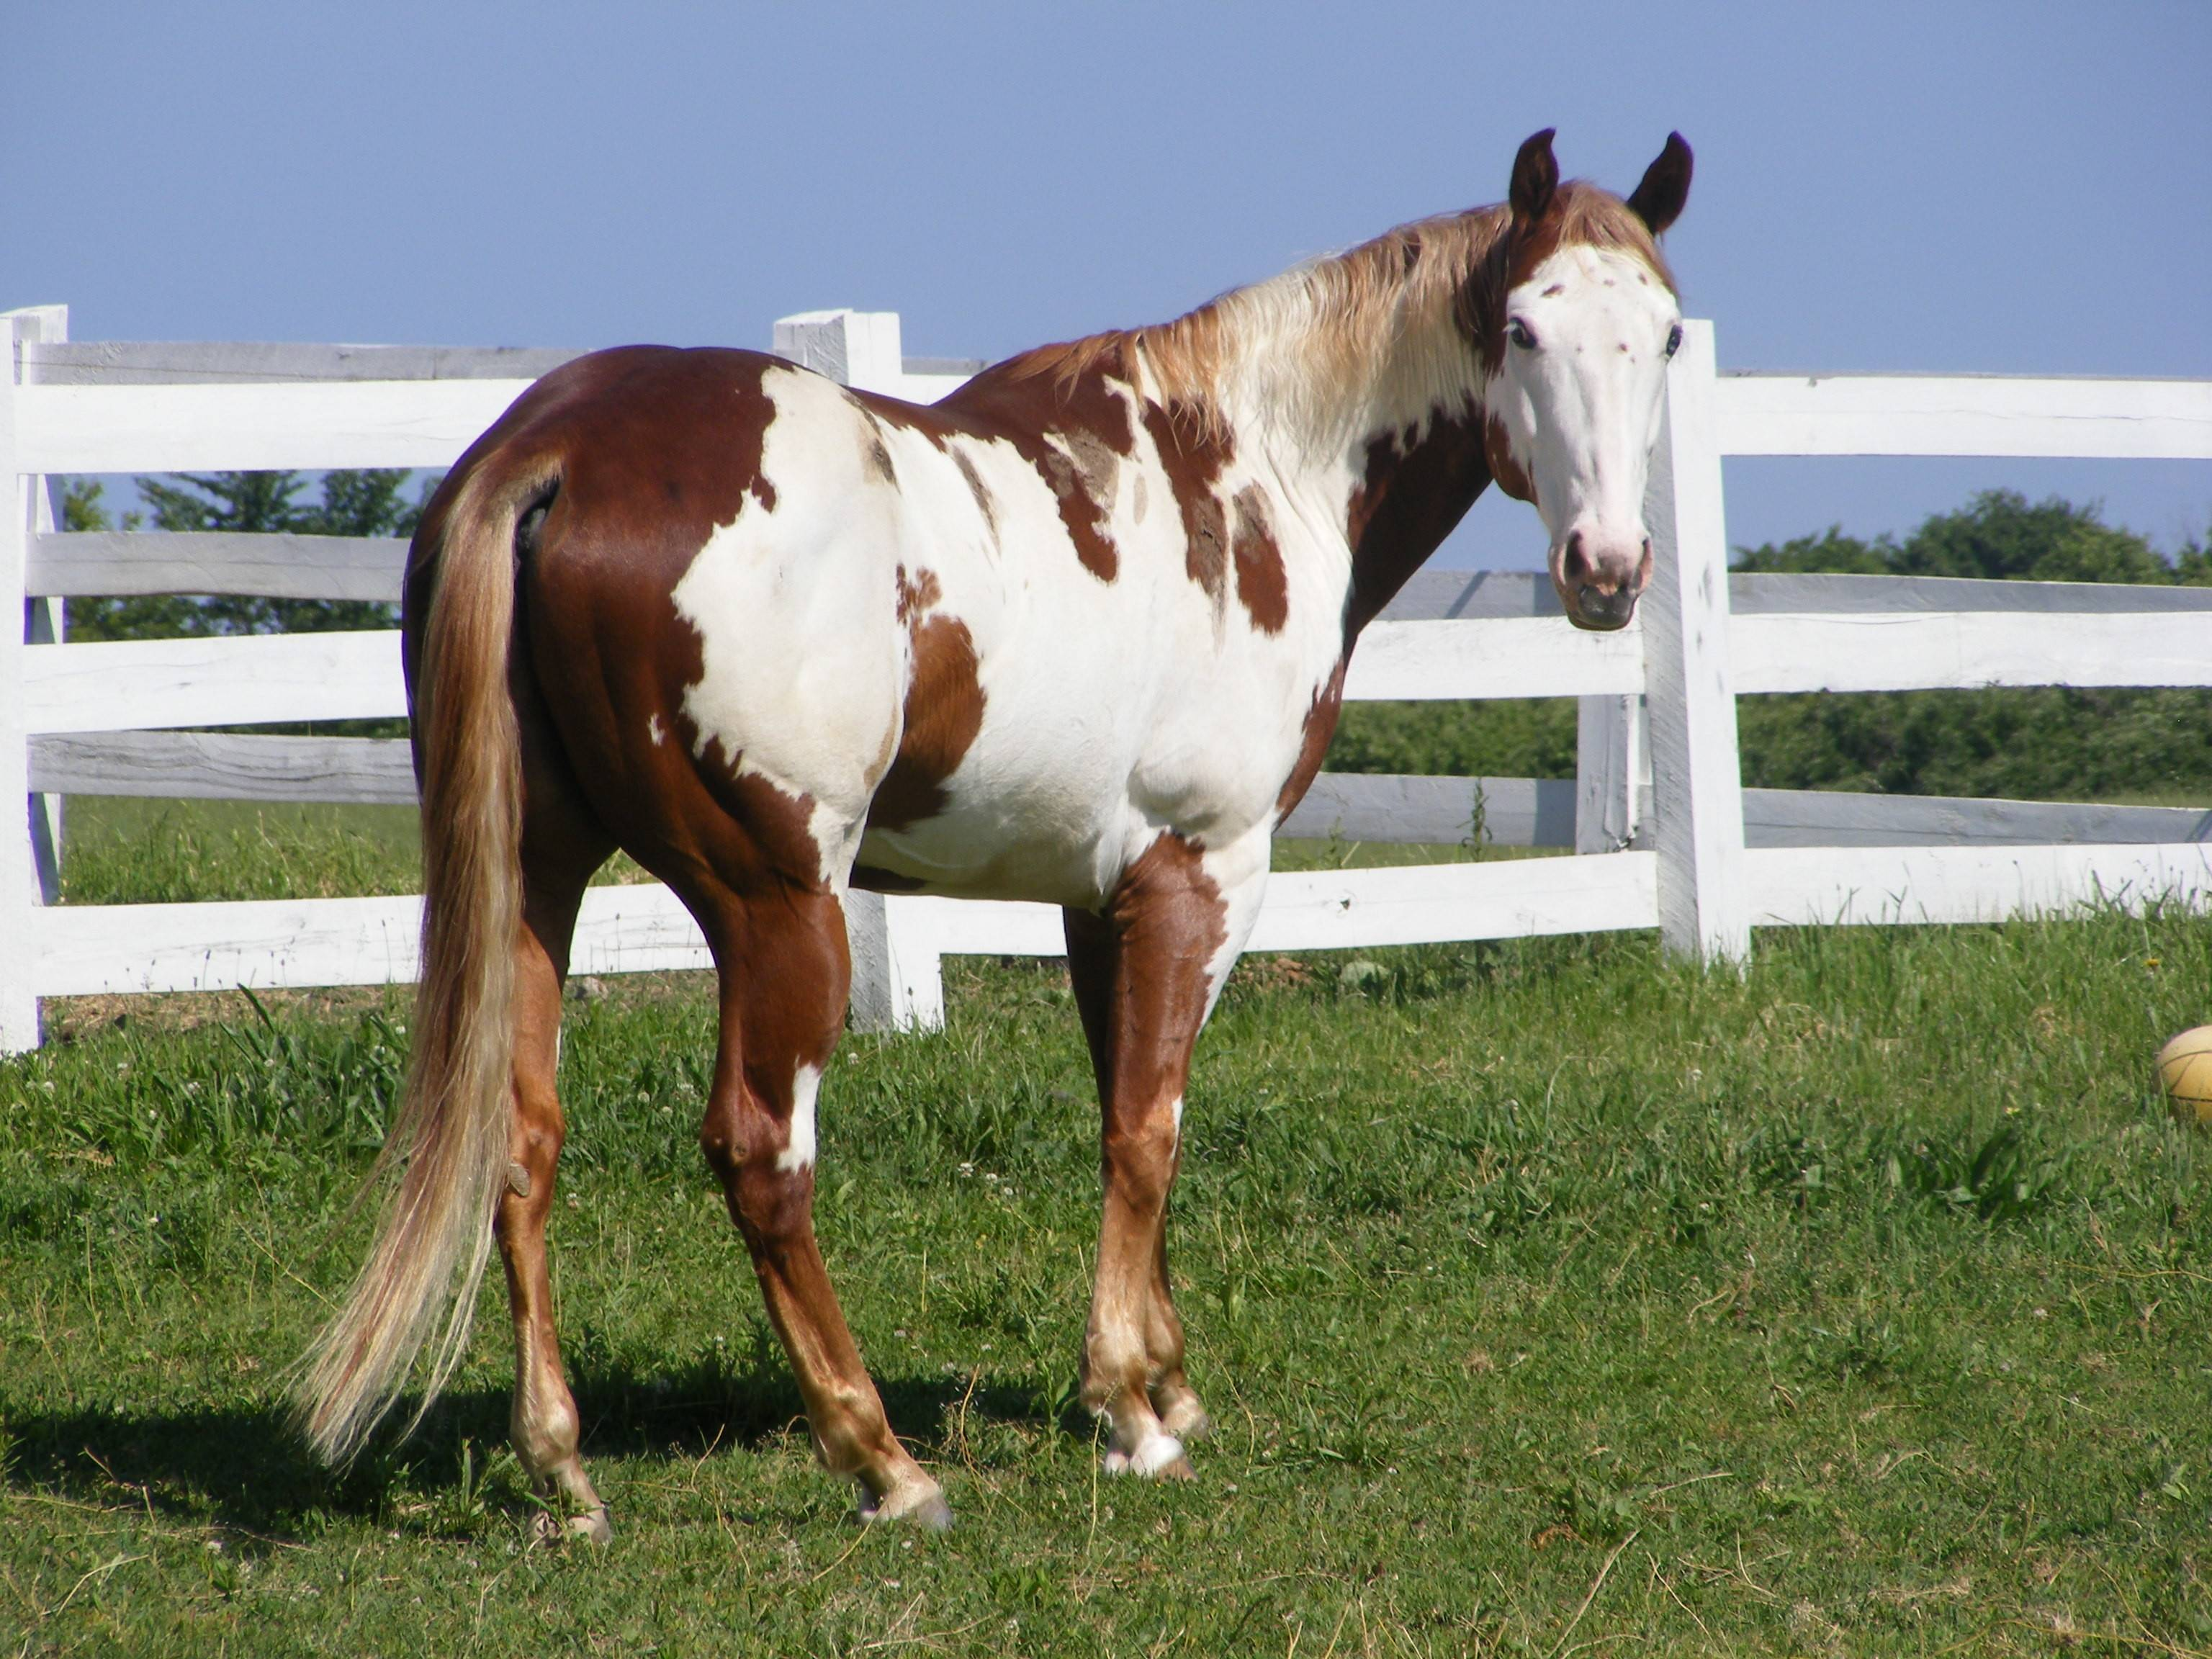 Paint Horse HD Wallpaper Images On ScreenCrotCom